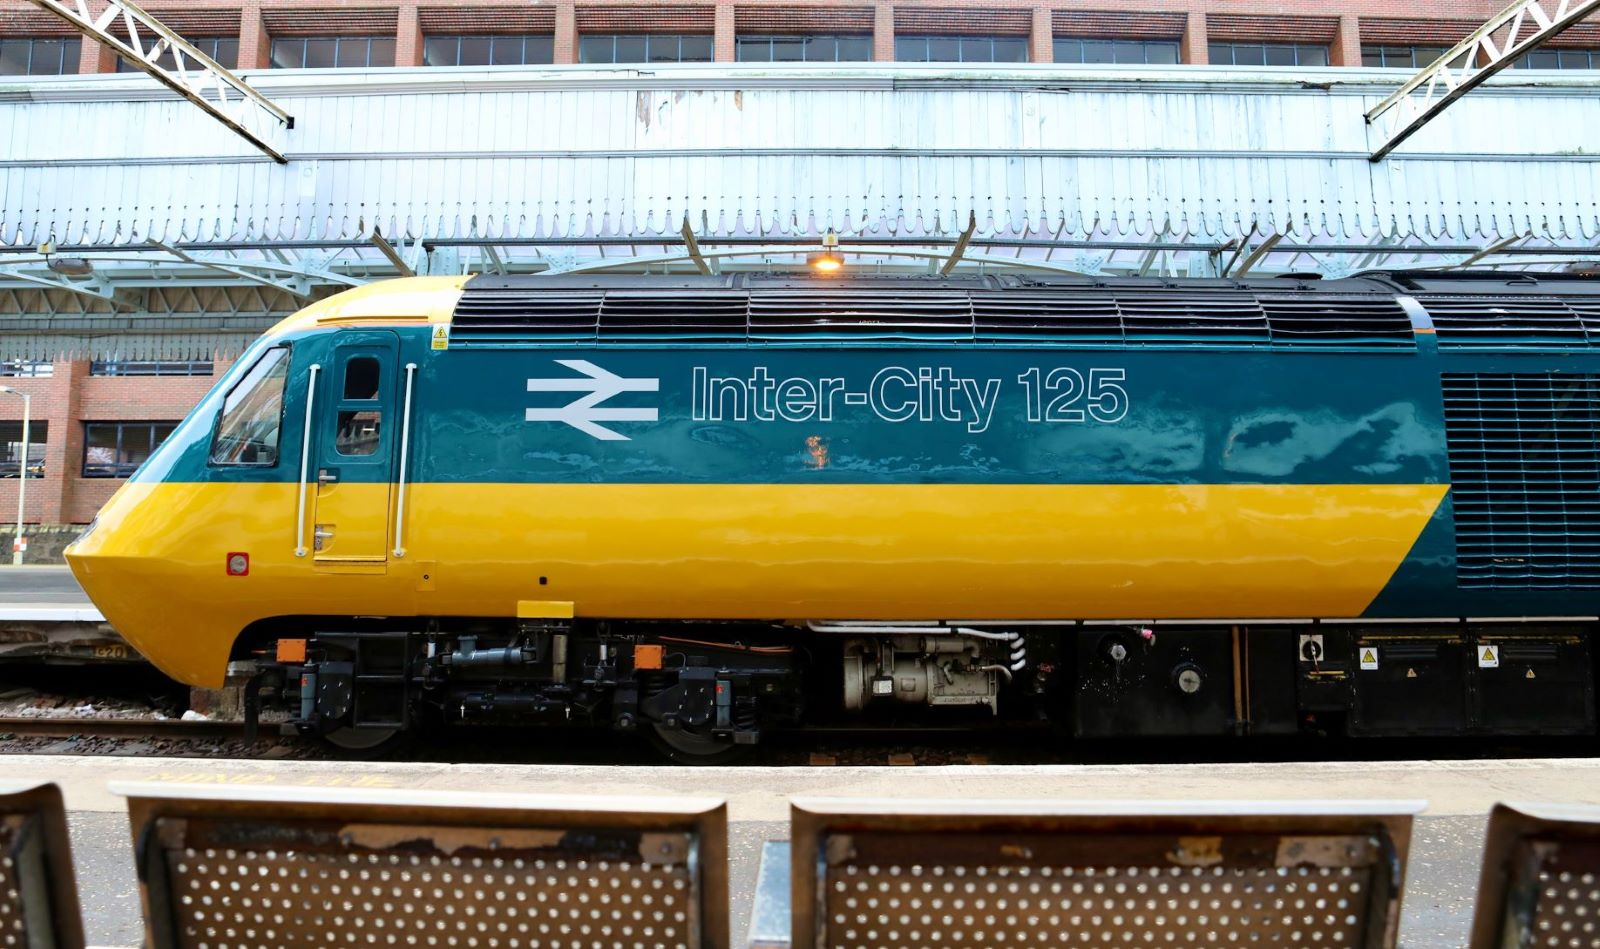 Inter-City 125 HST Farewell Collectors' Items Released For Sale